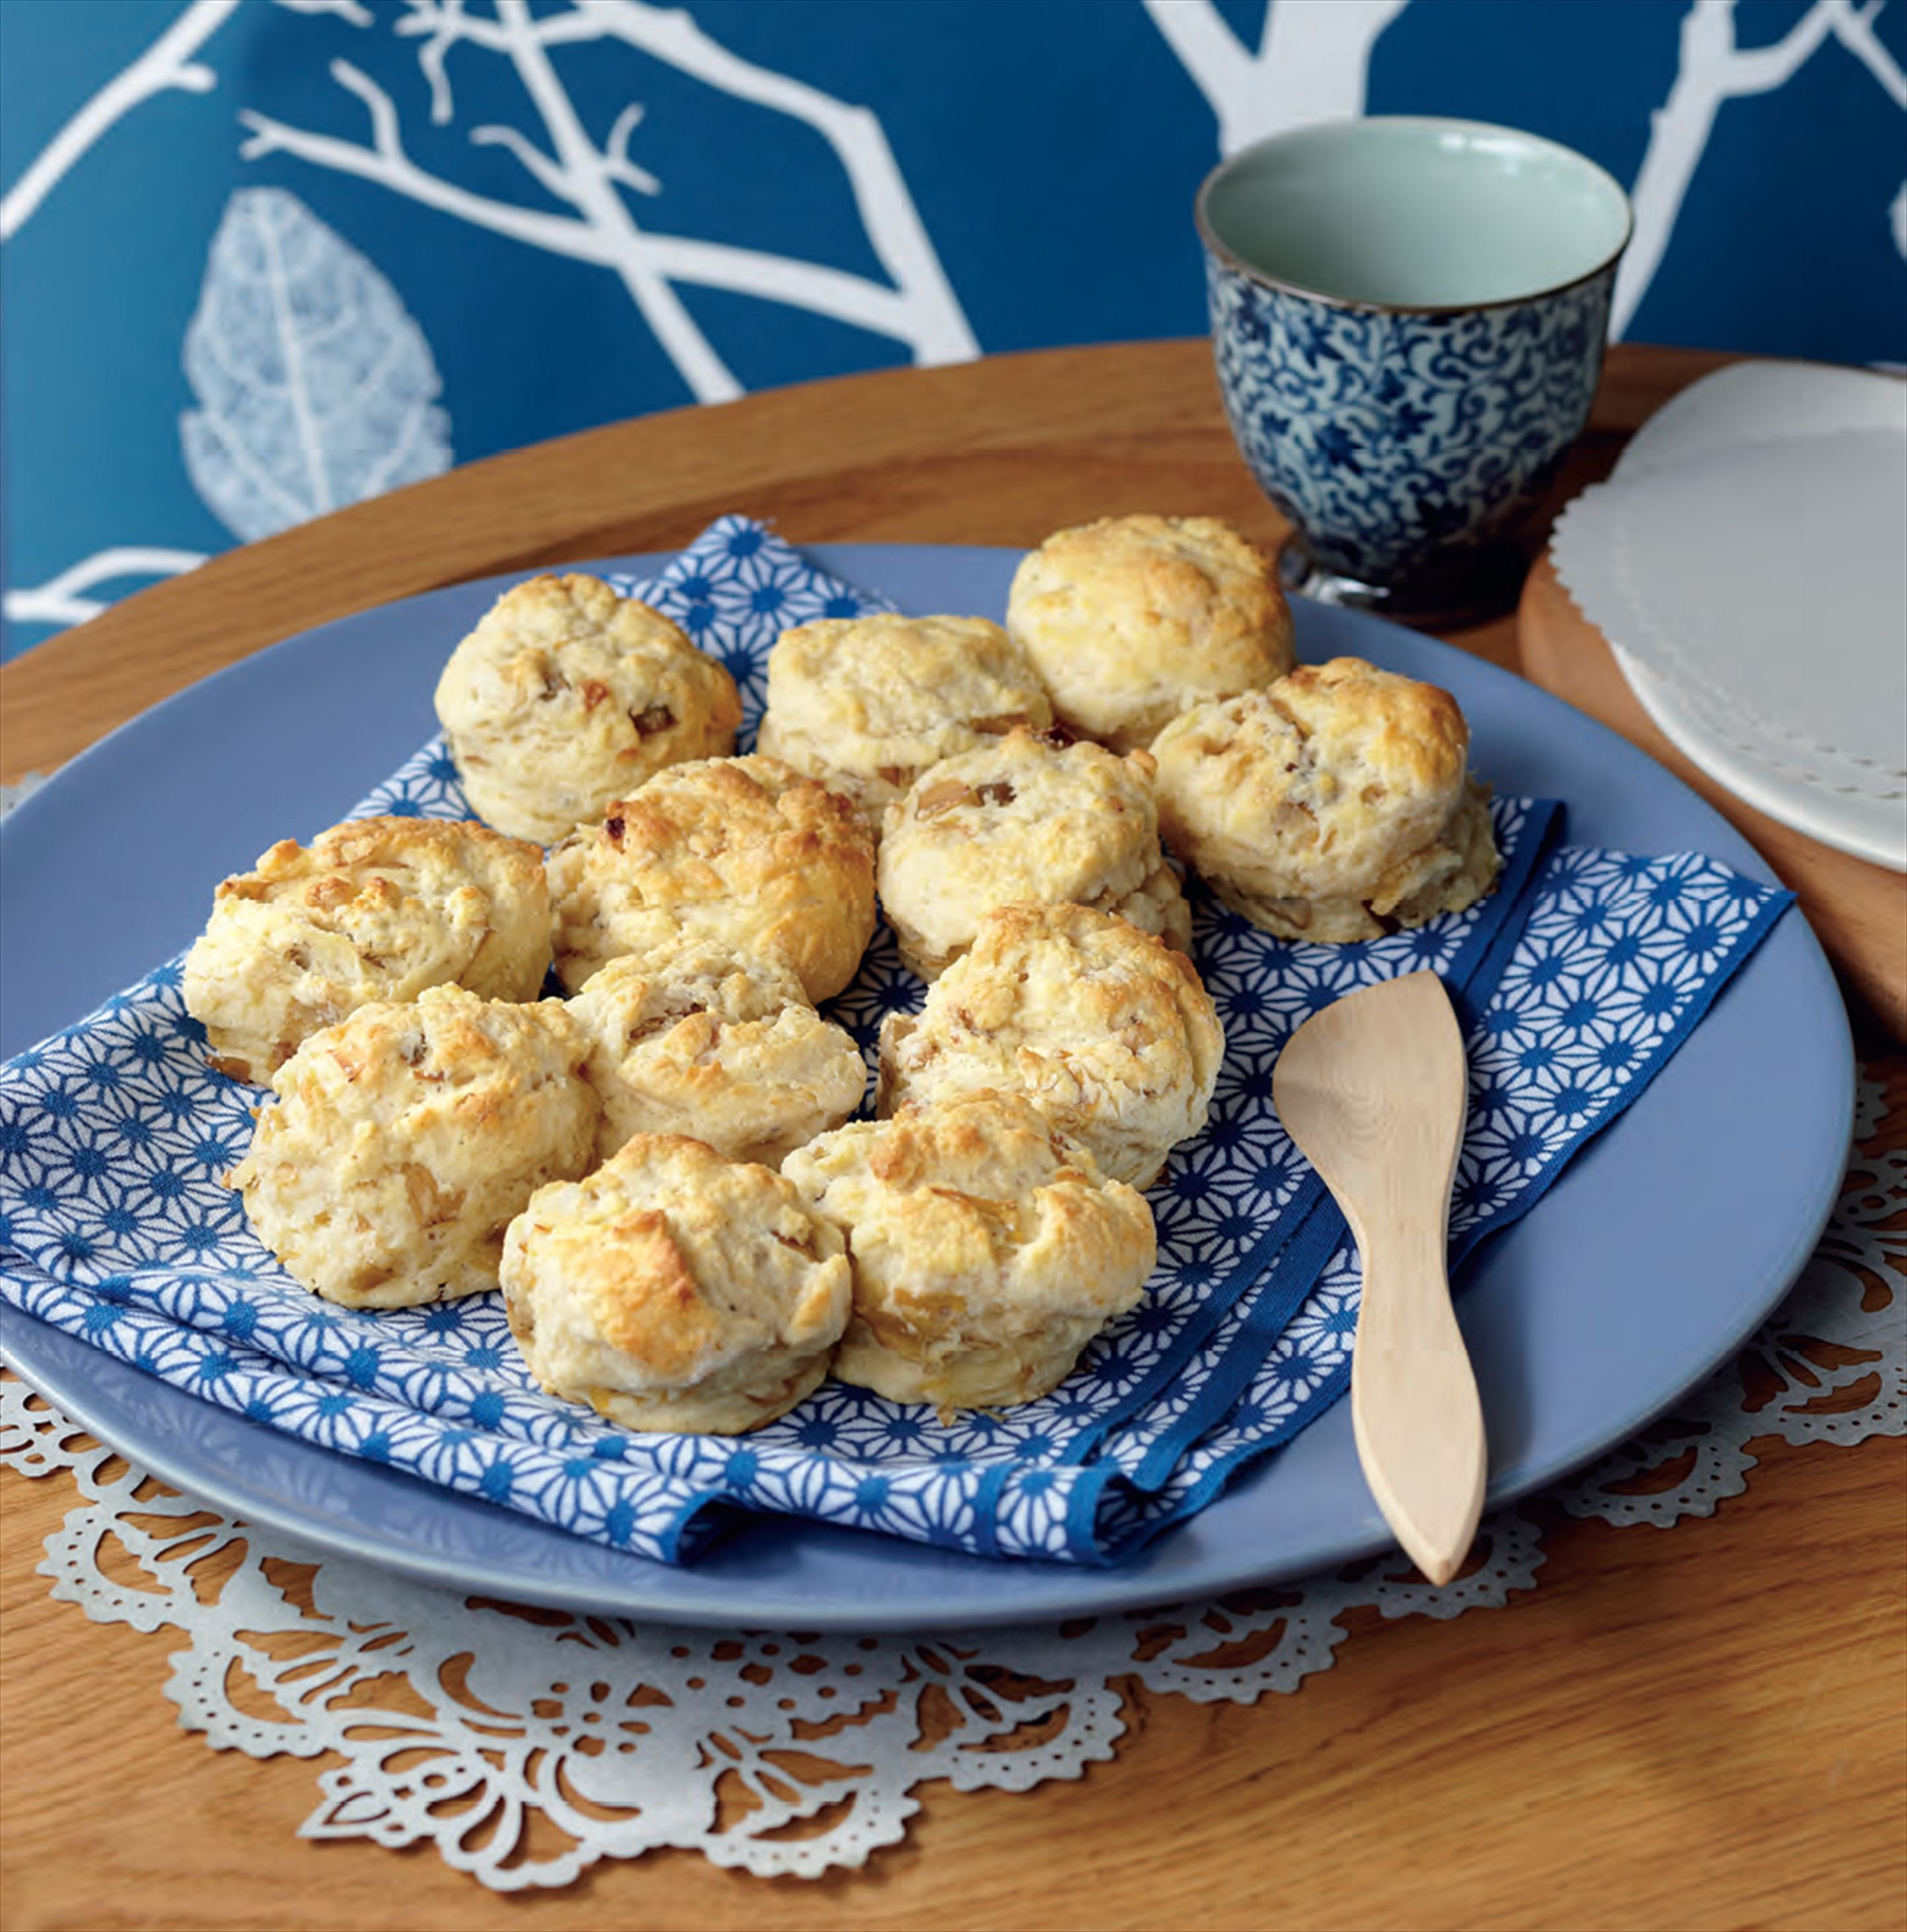 Caramelised leek and artichoke scones